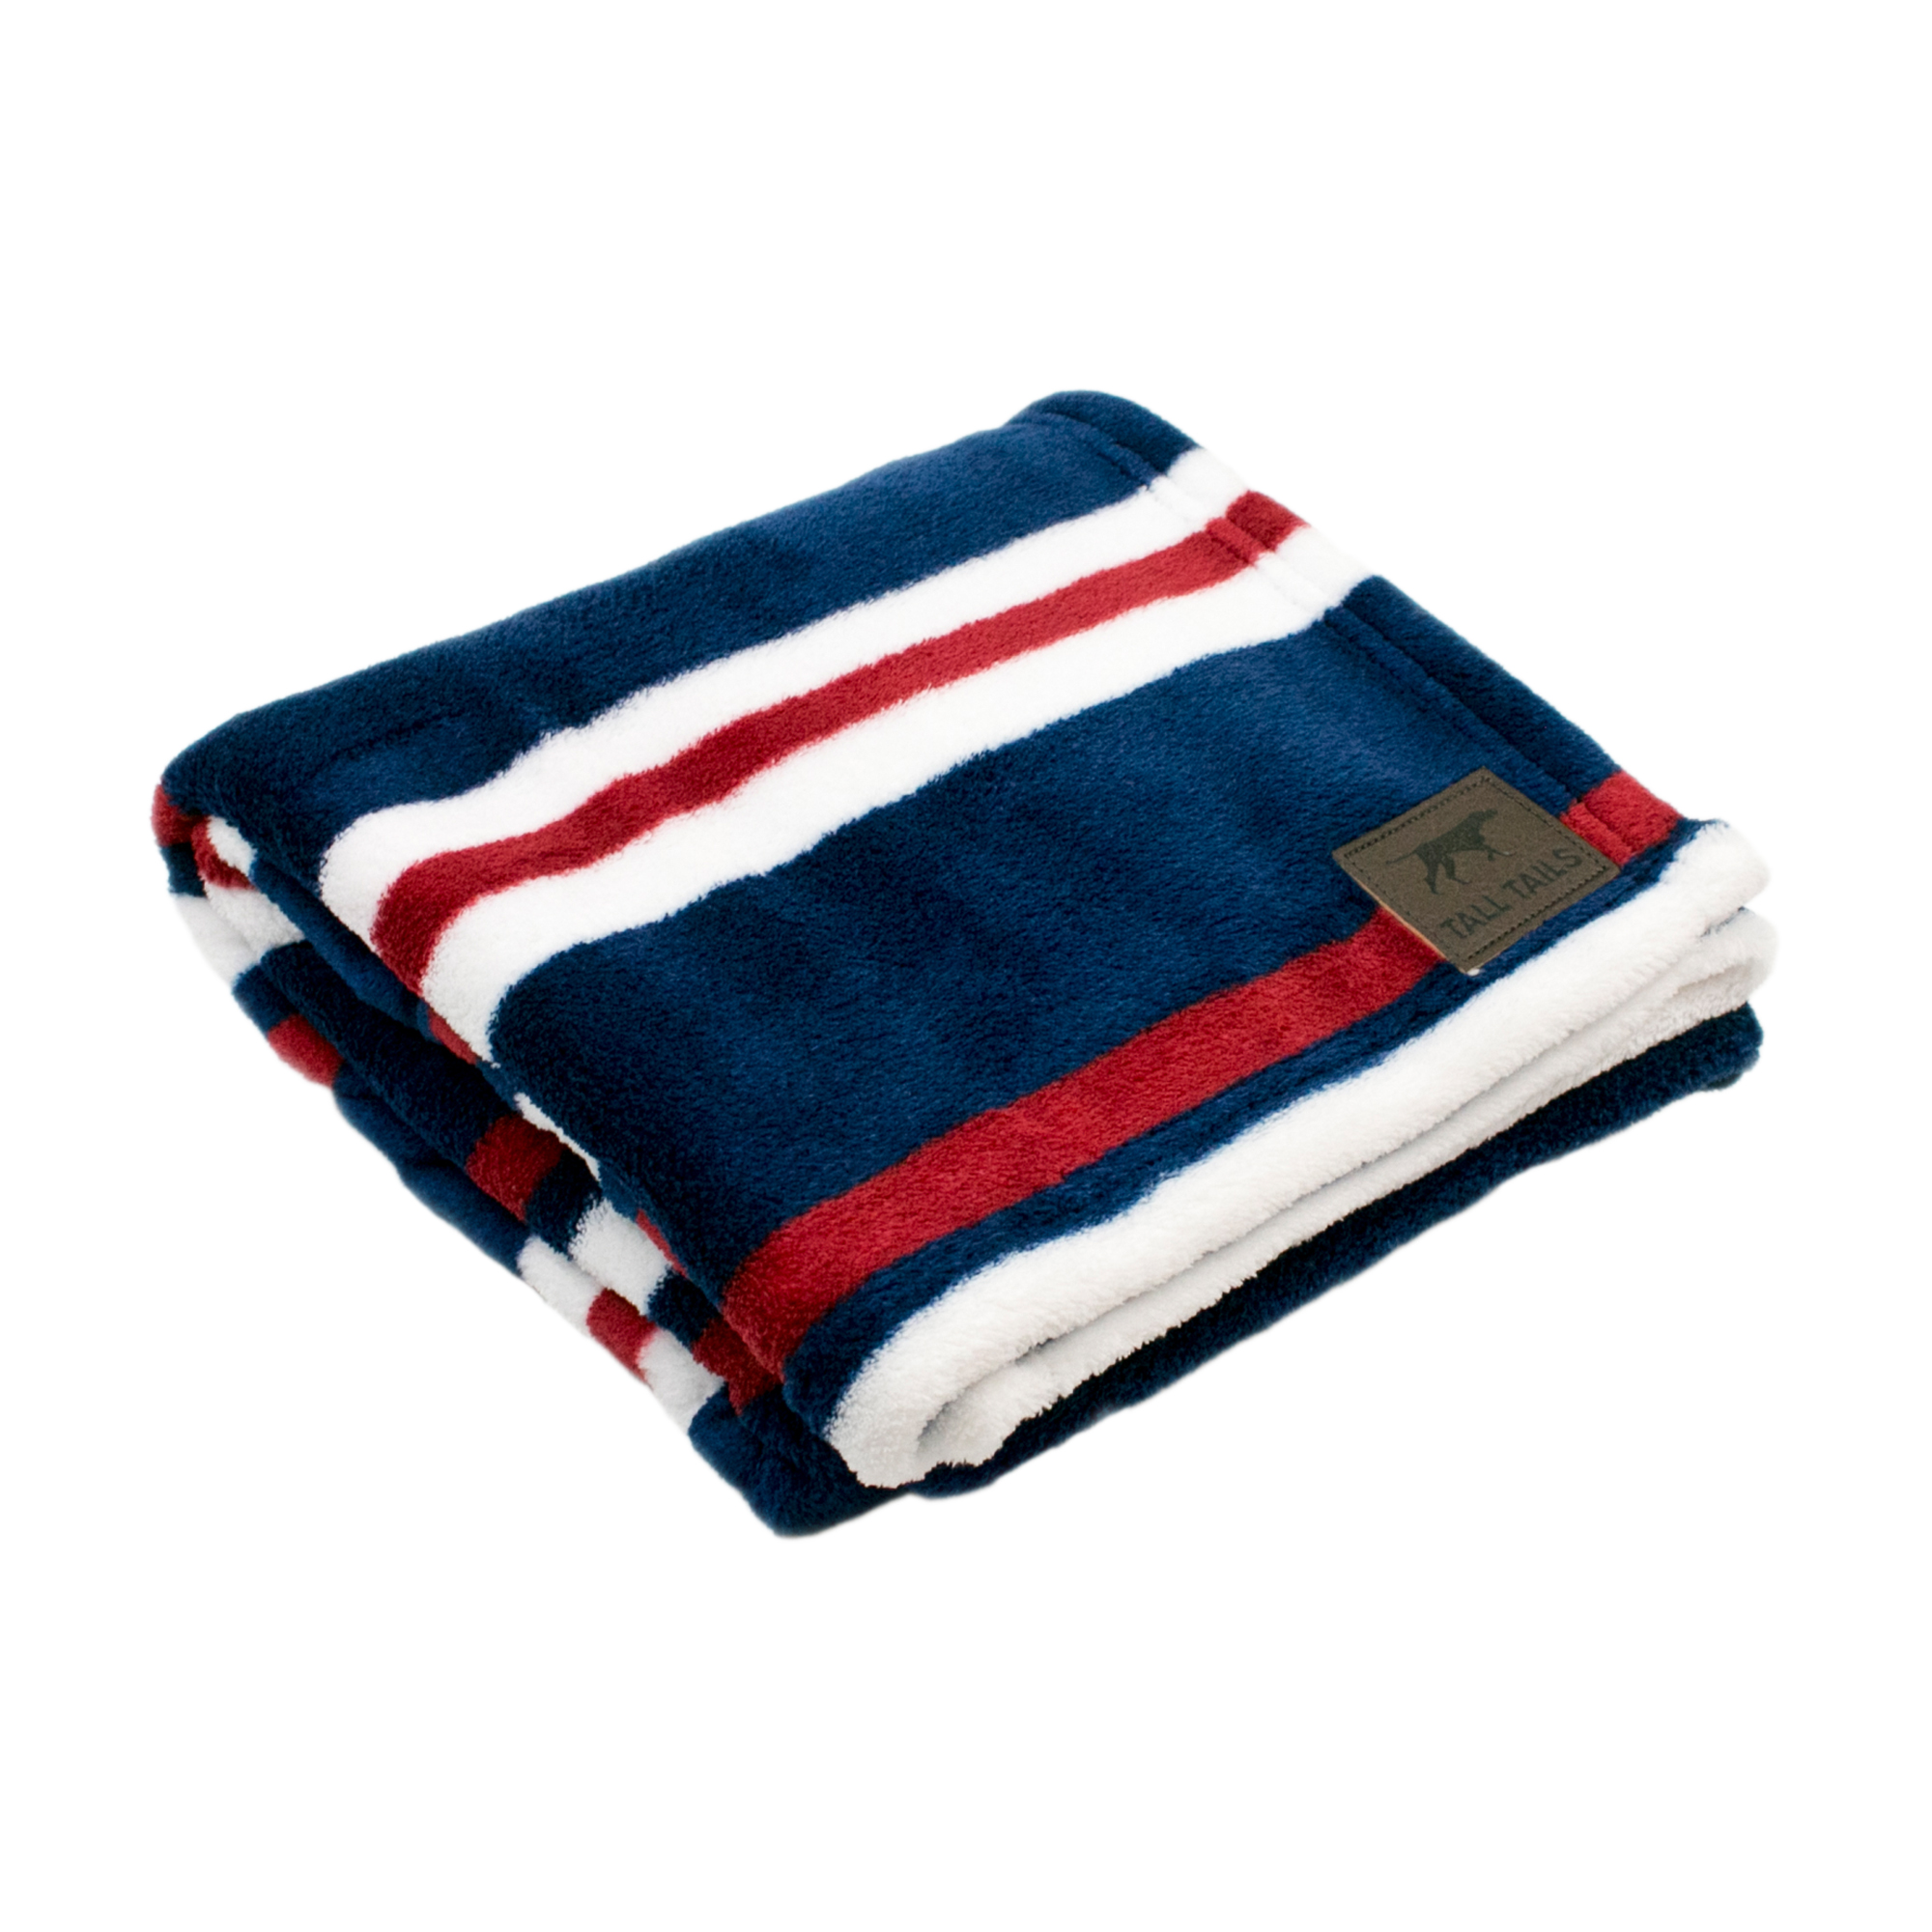 Tall Tails Nautical Stripe Dog Blanket, 30x40